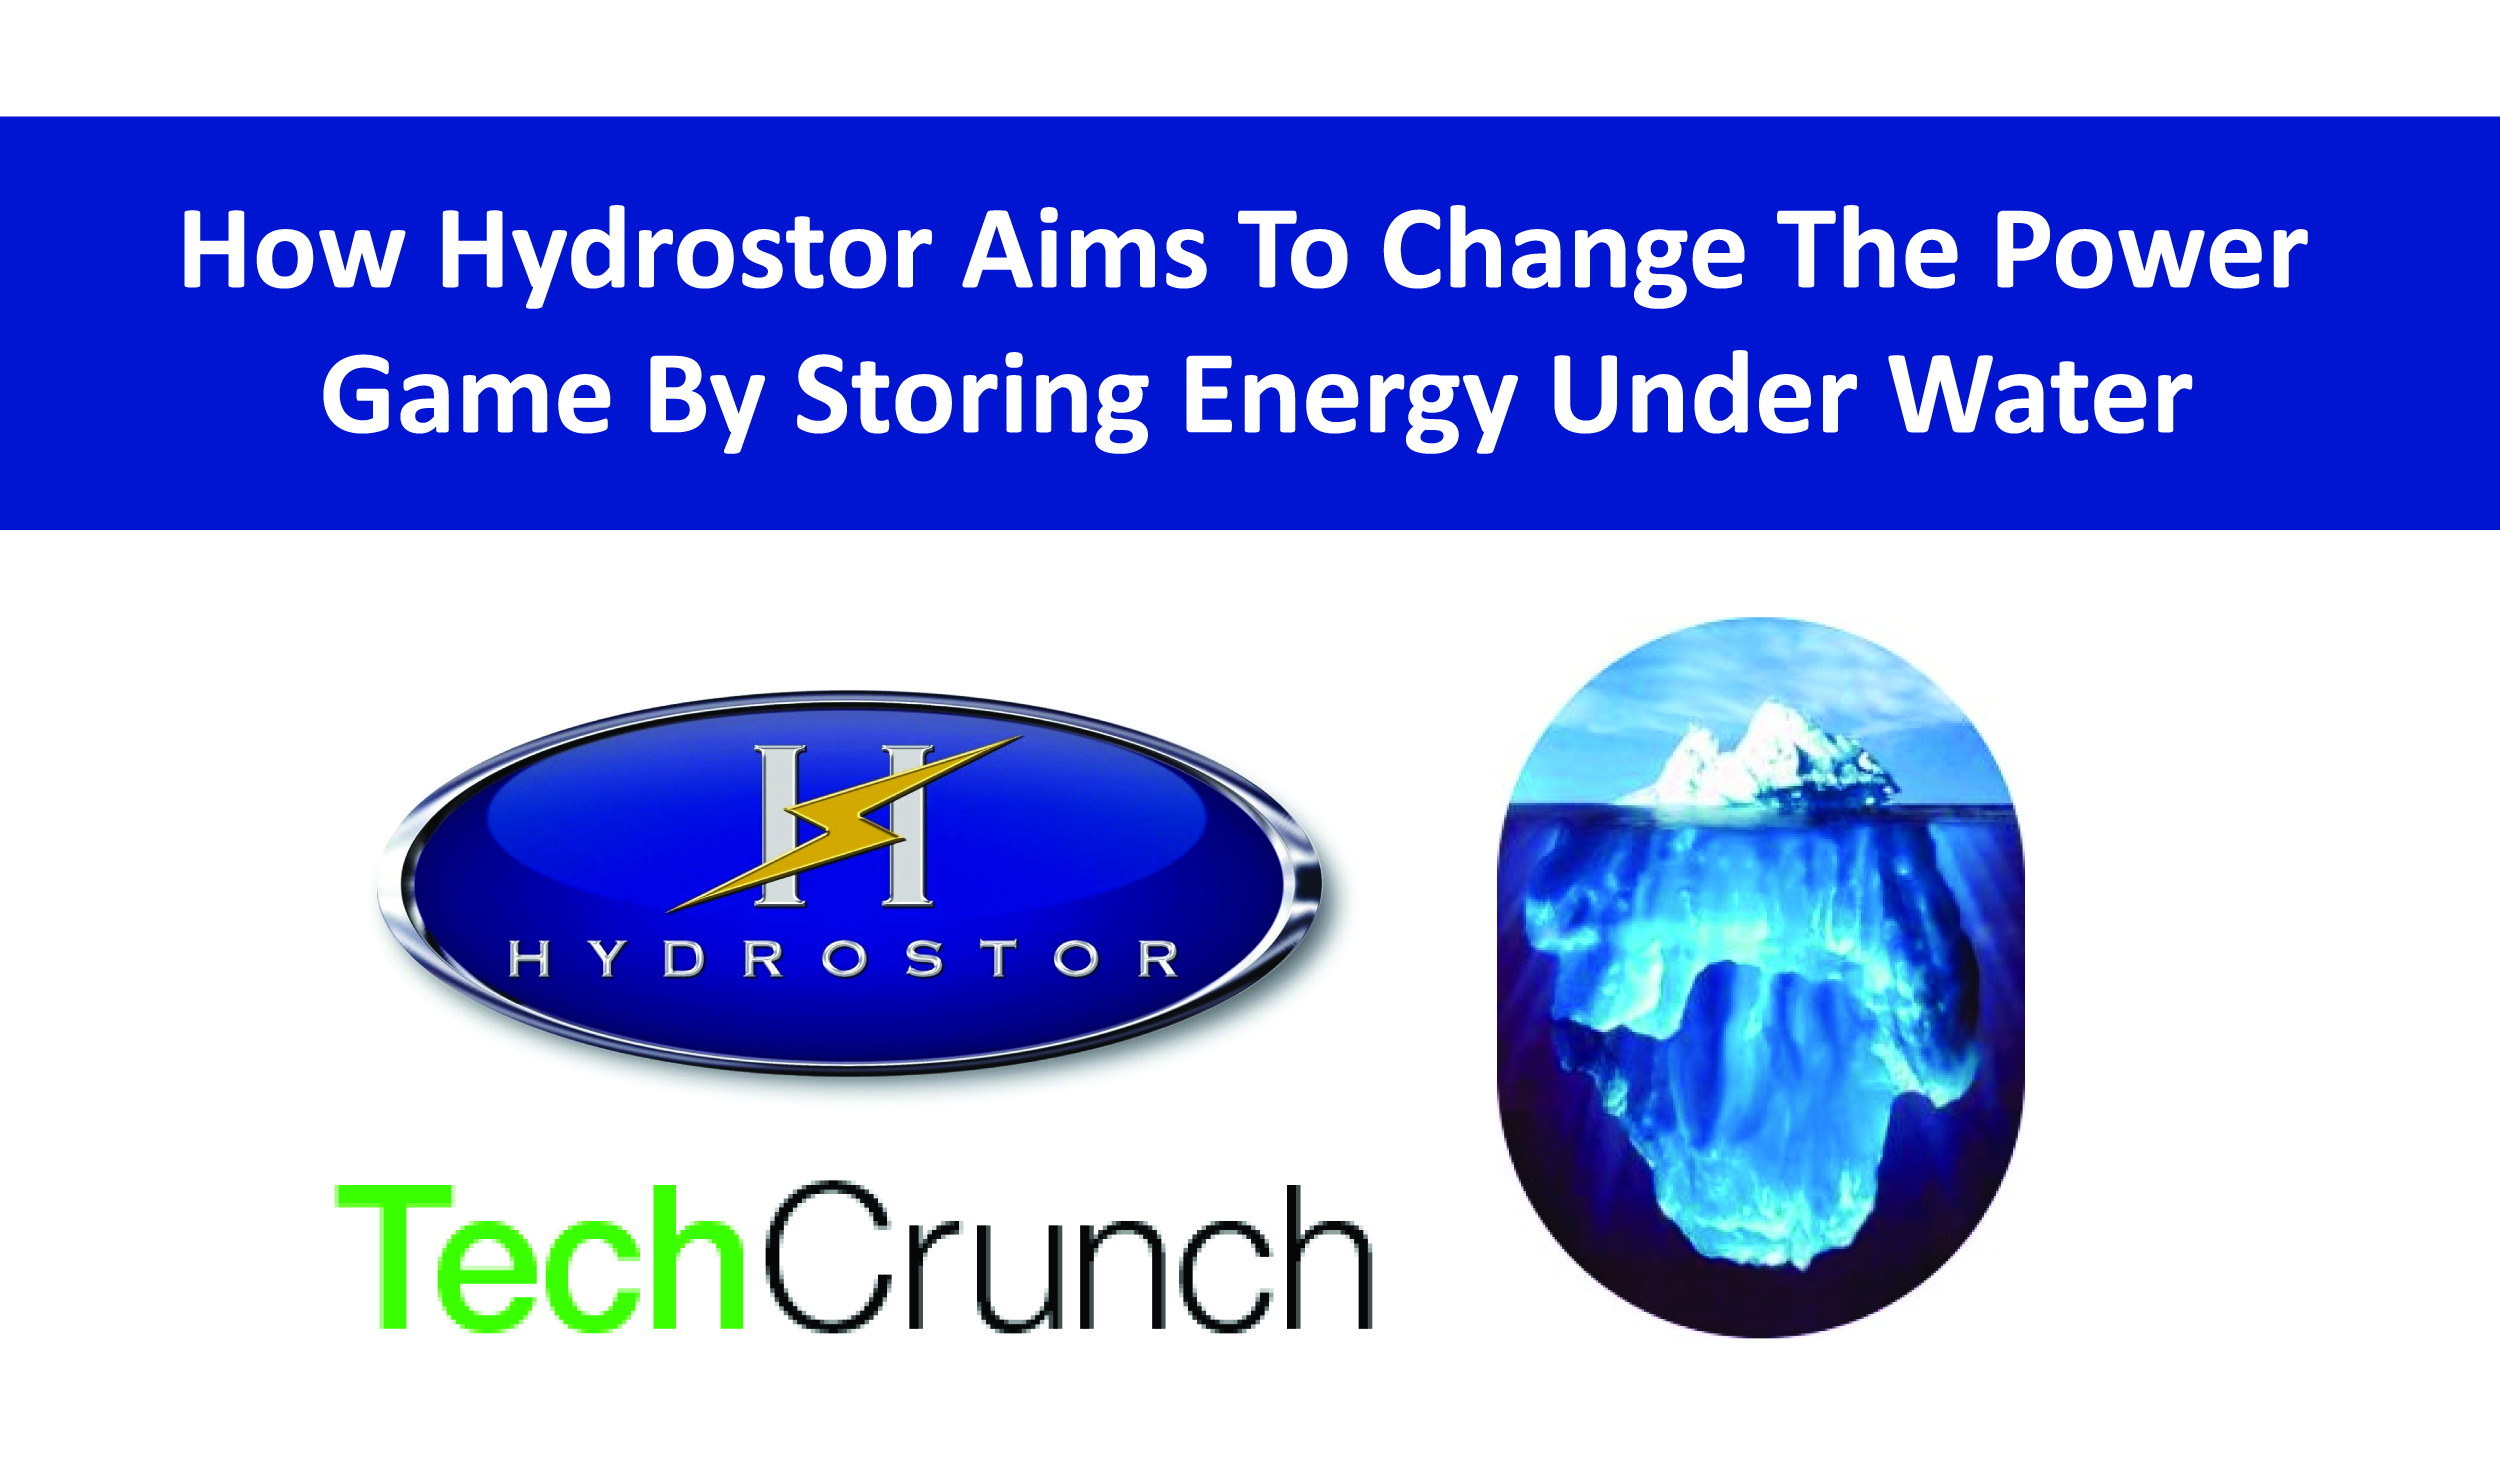 How Hydrostor Aims To Change The Power Game By Storing Energy Under Water